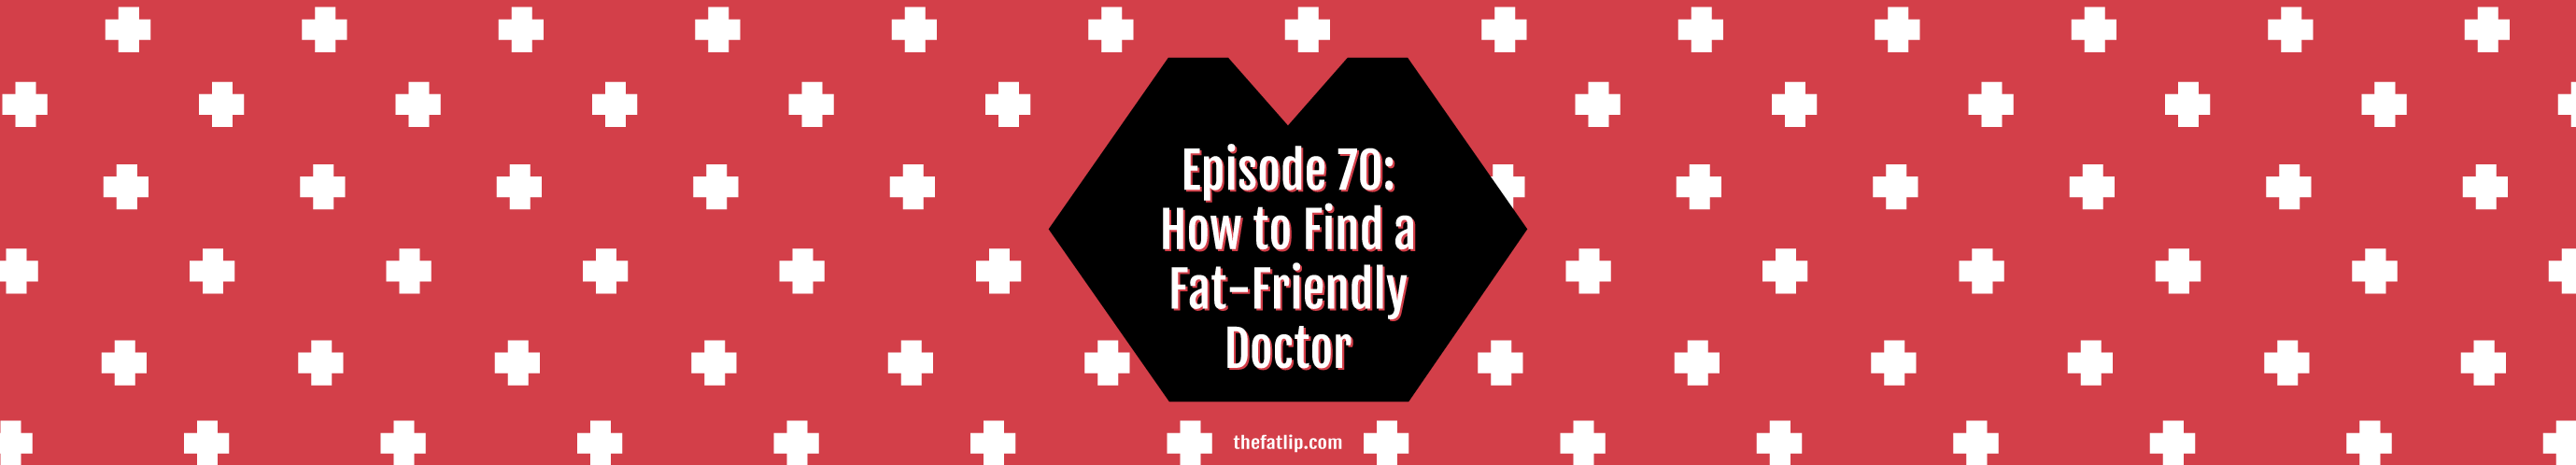 how to find a fat friendly doctor